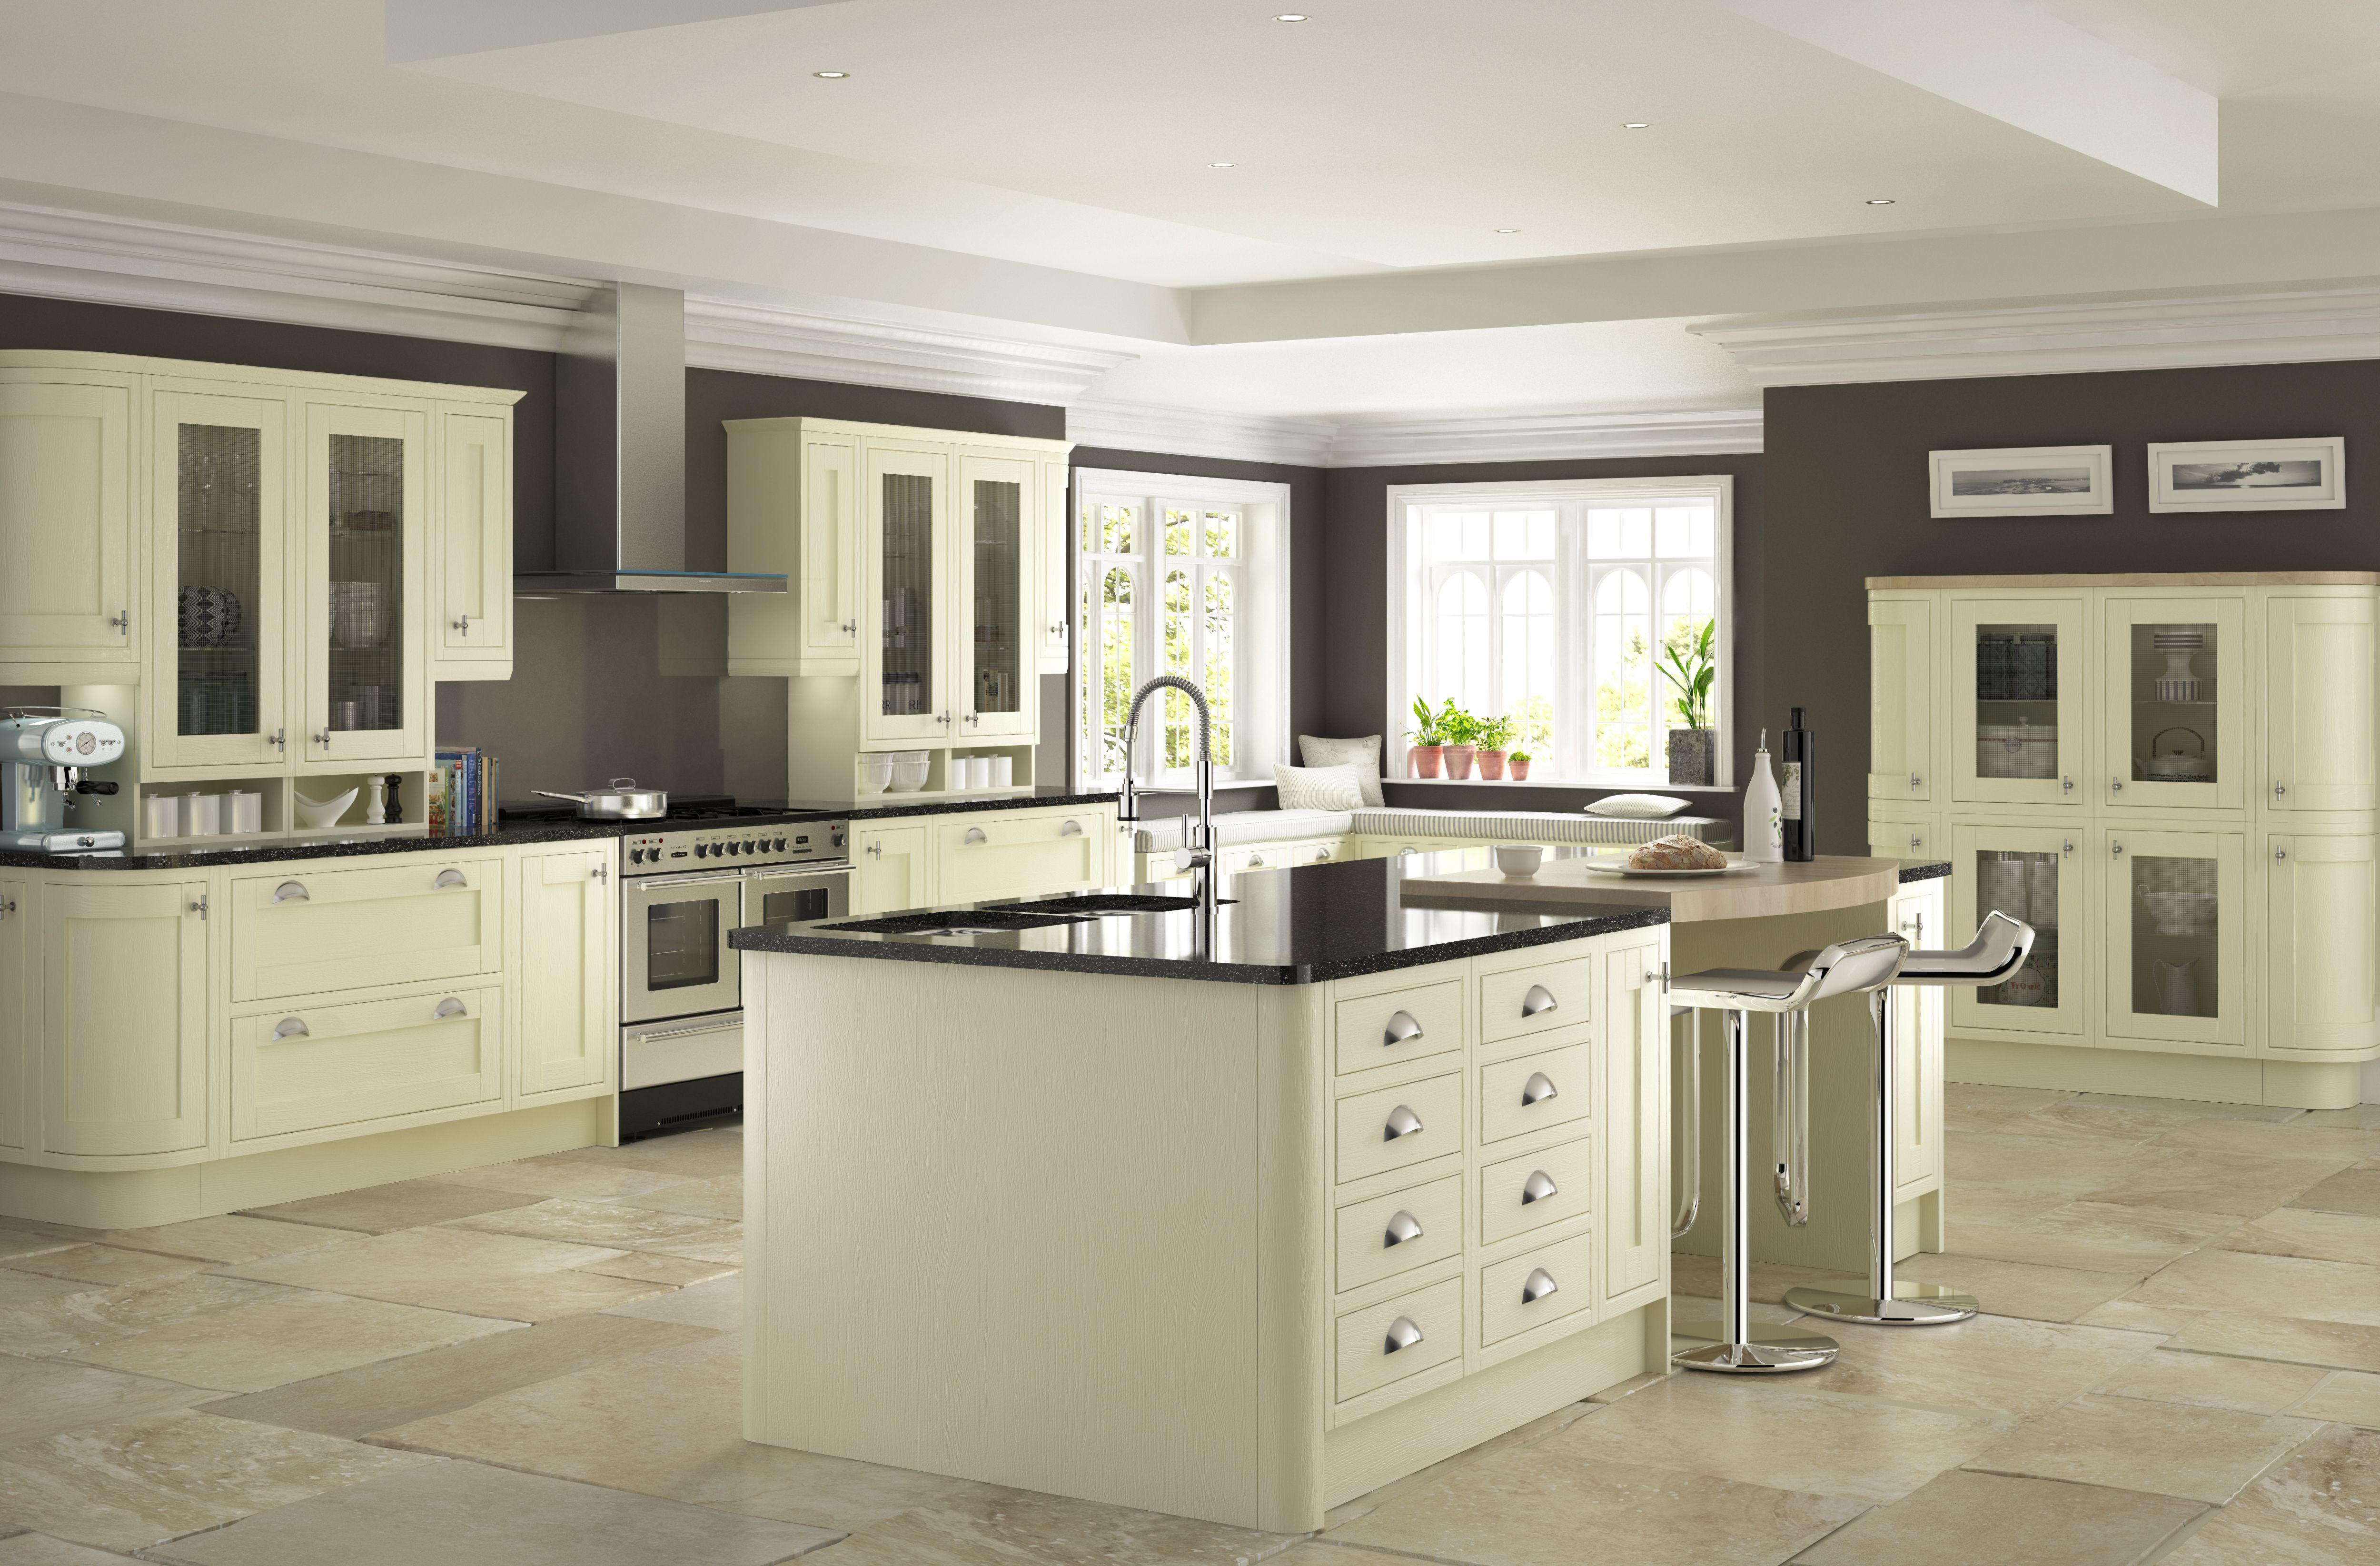 new england http://www.academyhome.co.uk/products/kitchens/kitchen